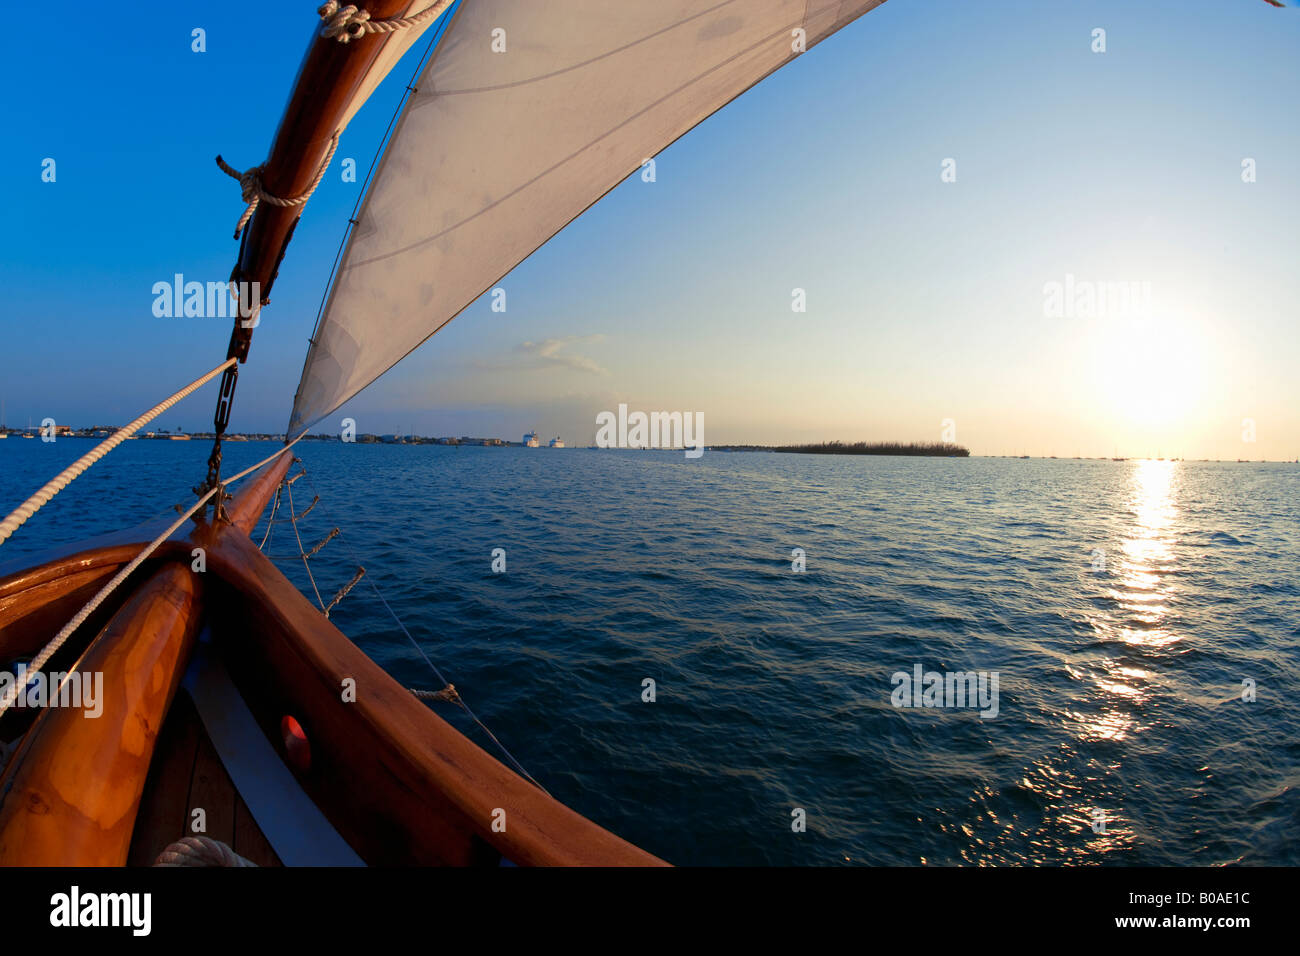 View of sunset from sailboat in Key West, Florida - Stock Image